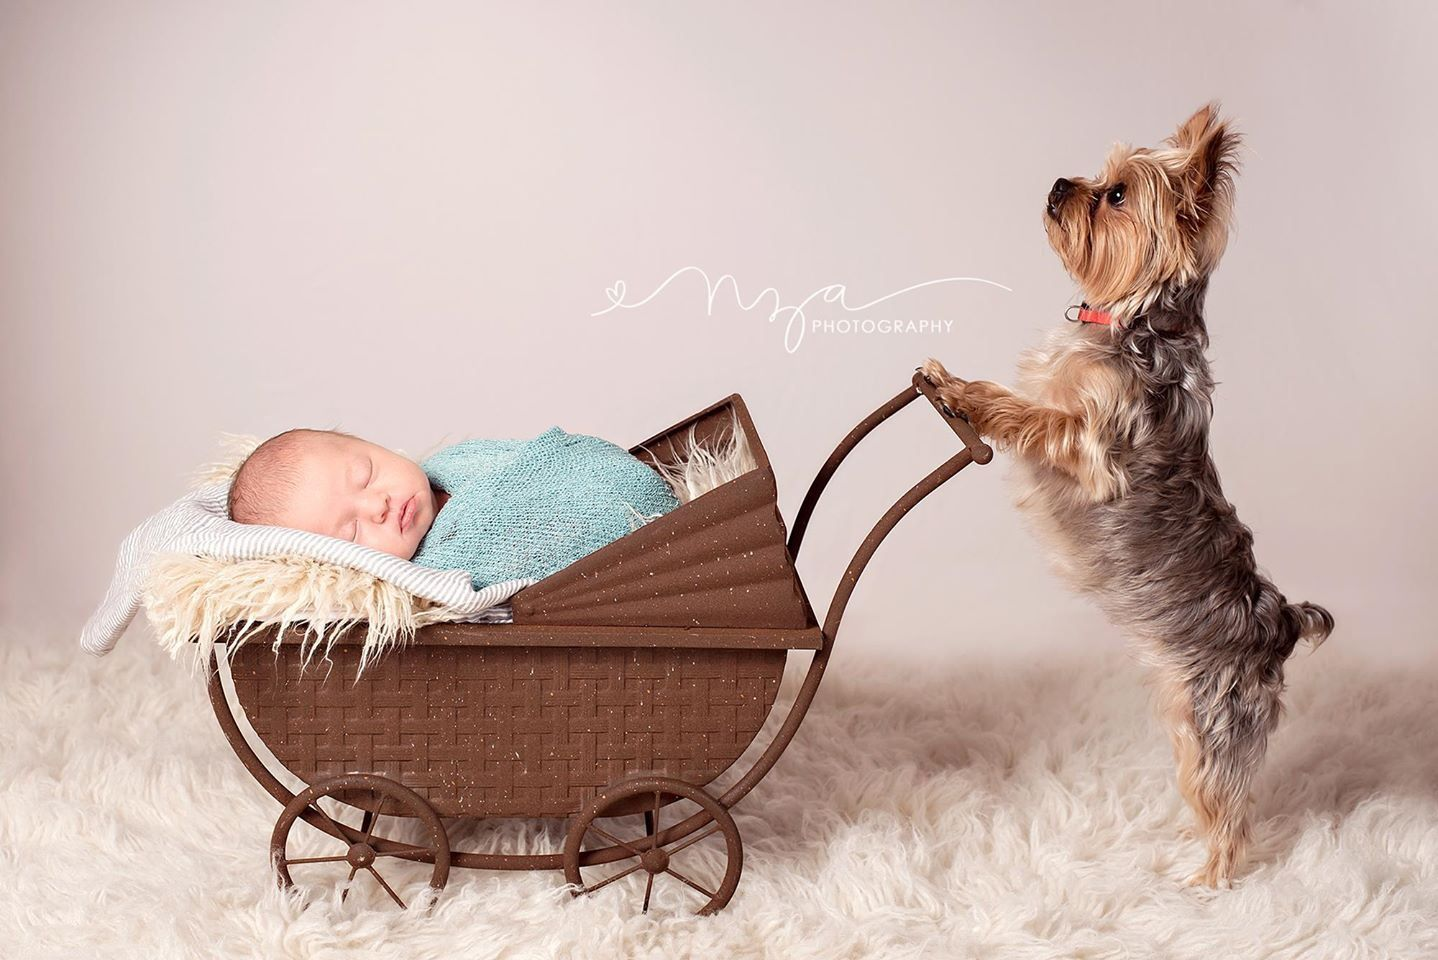 Pin by Photography by Leslie Ann on Newborn Photography